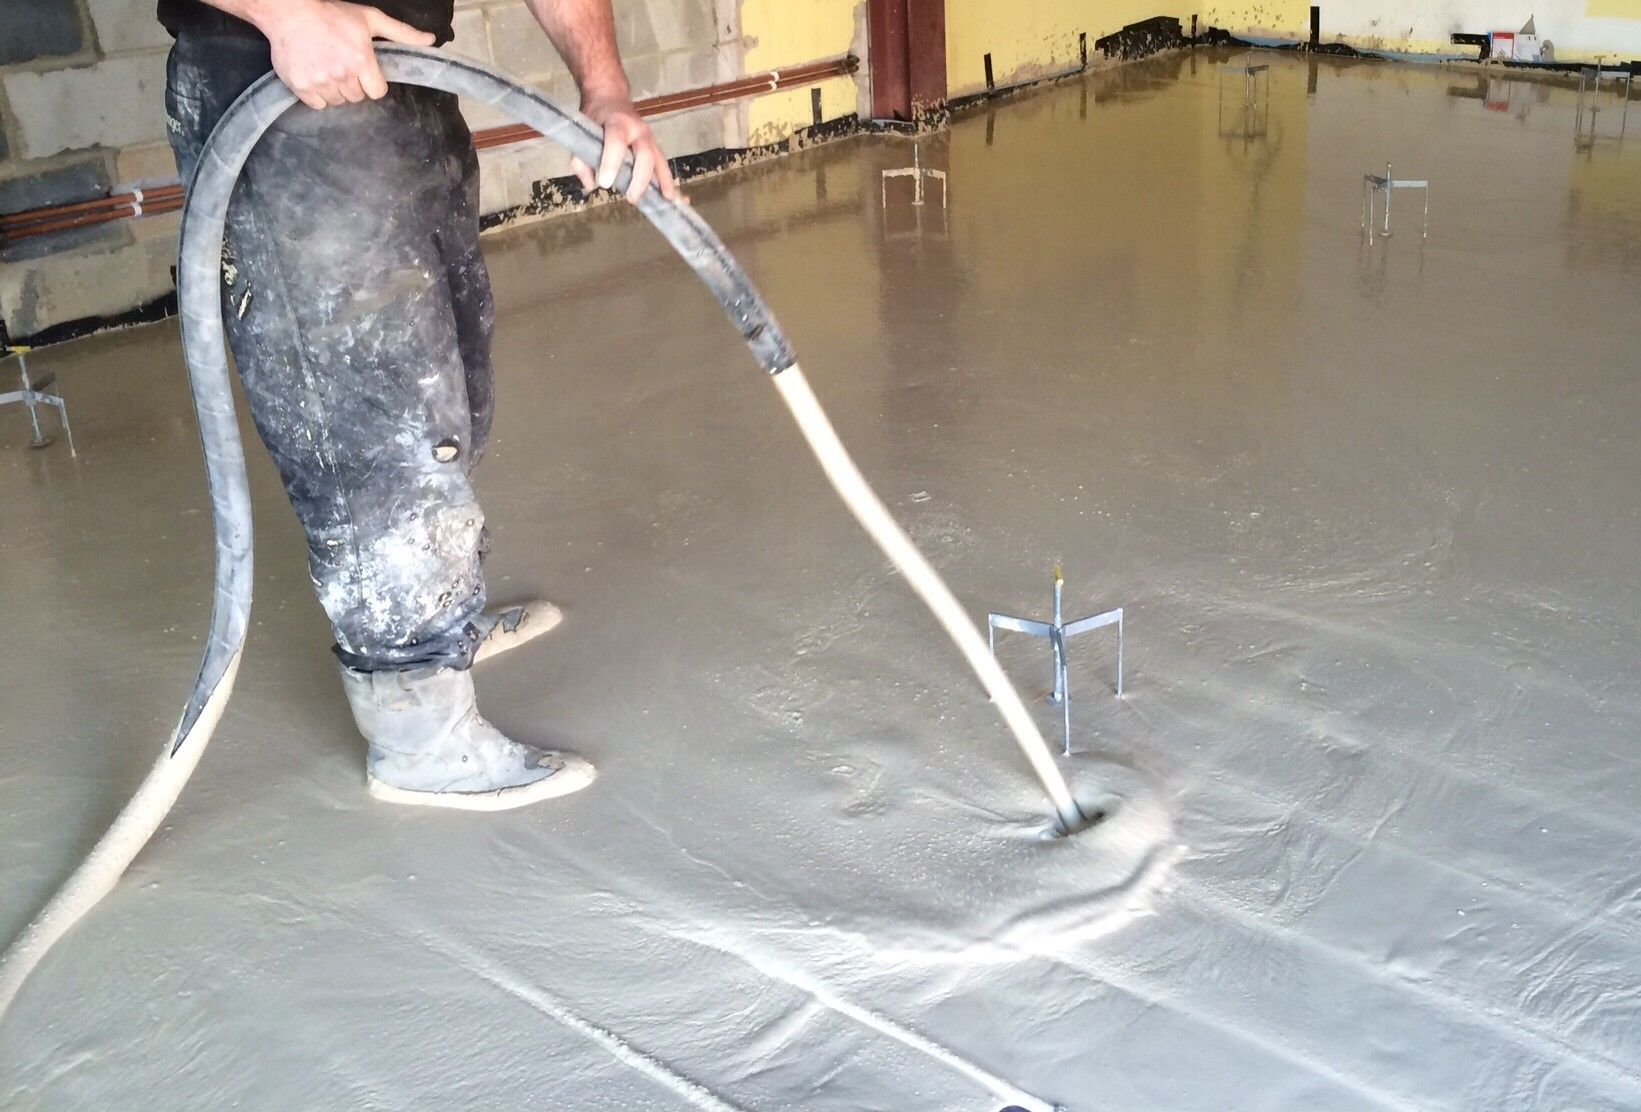 Man pouring liquid screed over underfloor heating system.